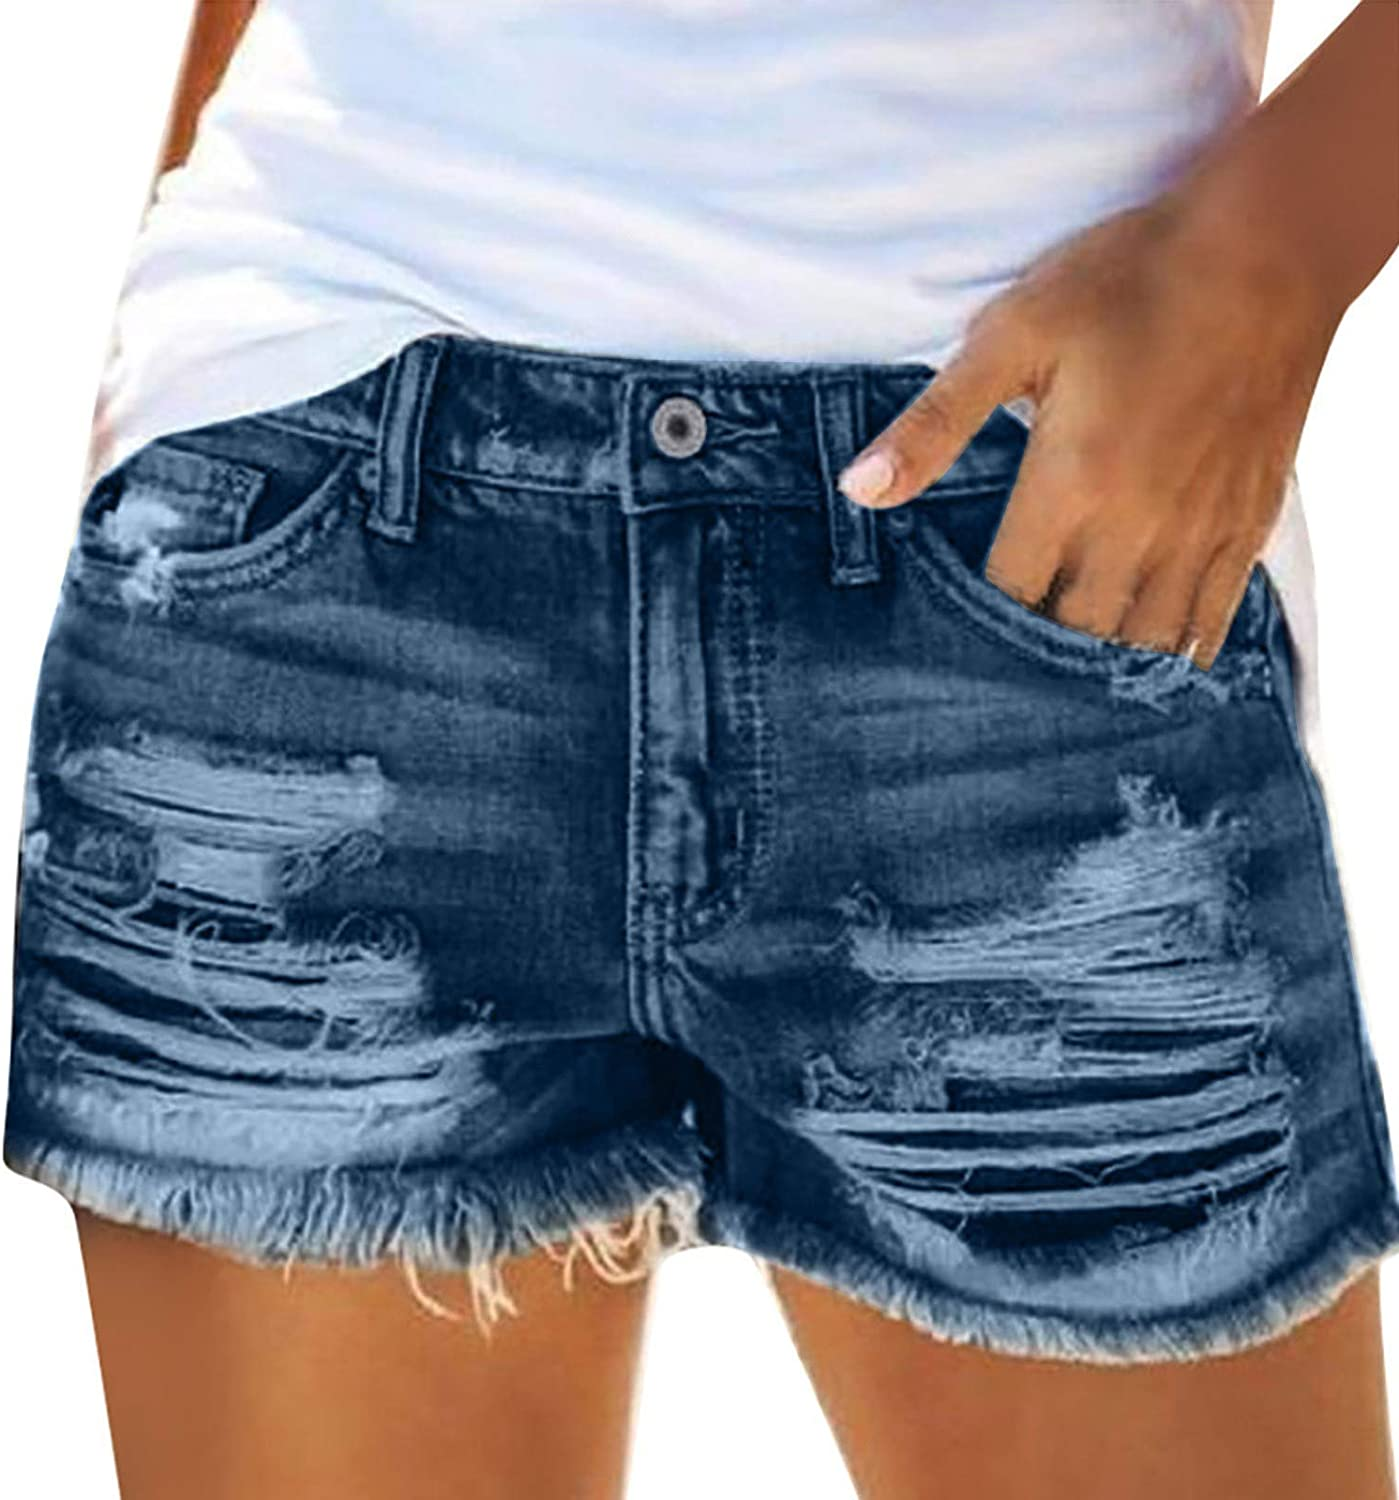 Denim Hot Shorts for Women Hole Frayed Raw Hem Ripped High Stretch Mid Rise Shaping Pull-on Skinny Jeans Pants